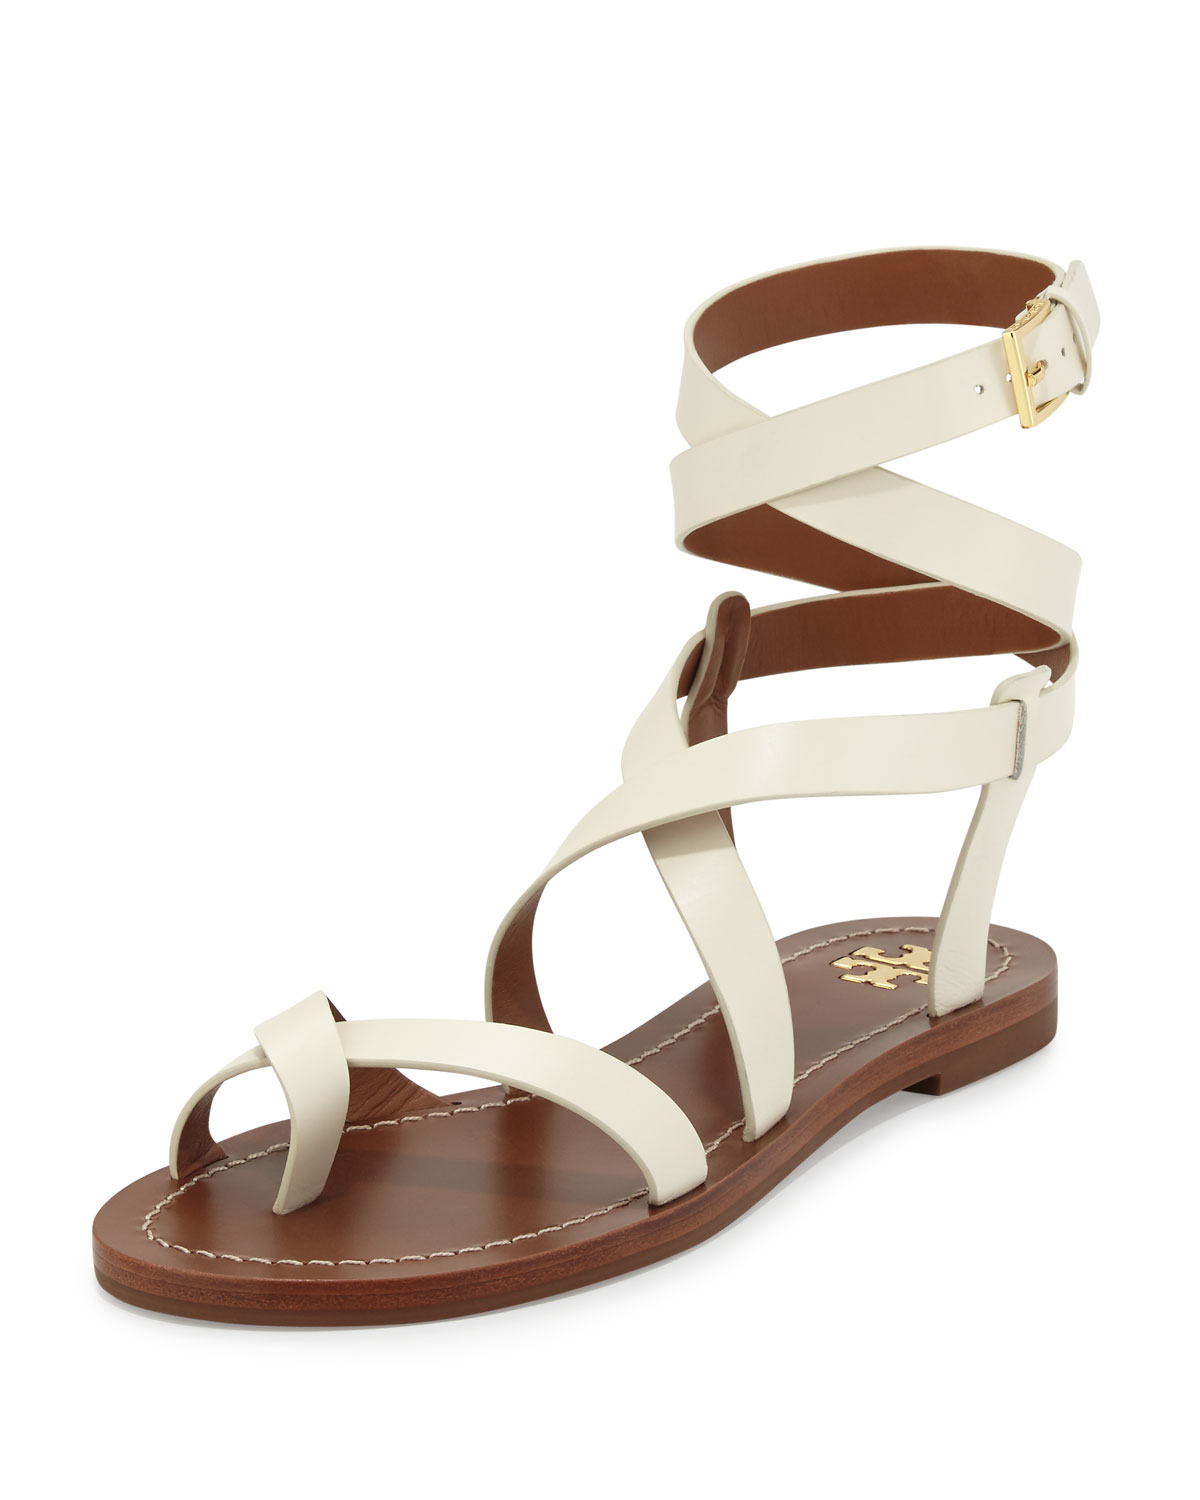 6f0fd908bac Lyst - Tory Burch Patos Crisscross Leather Sandal in White